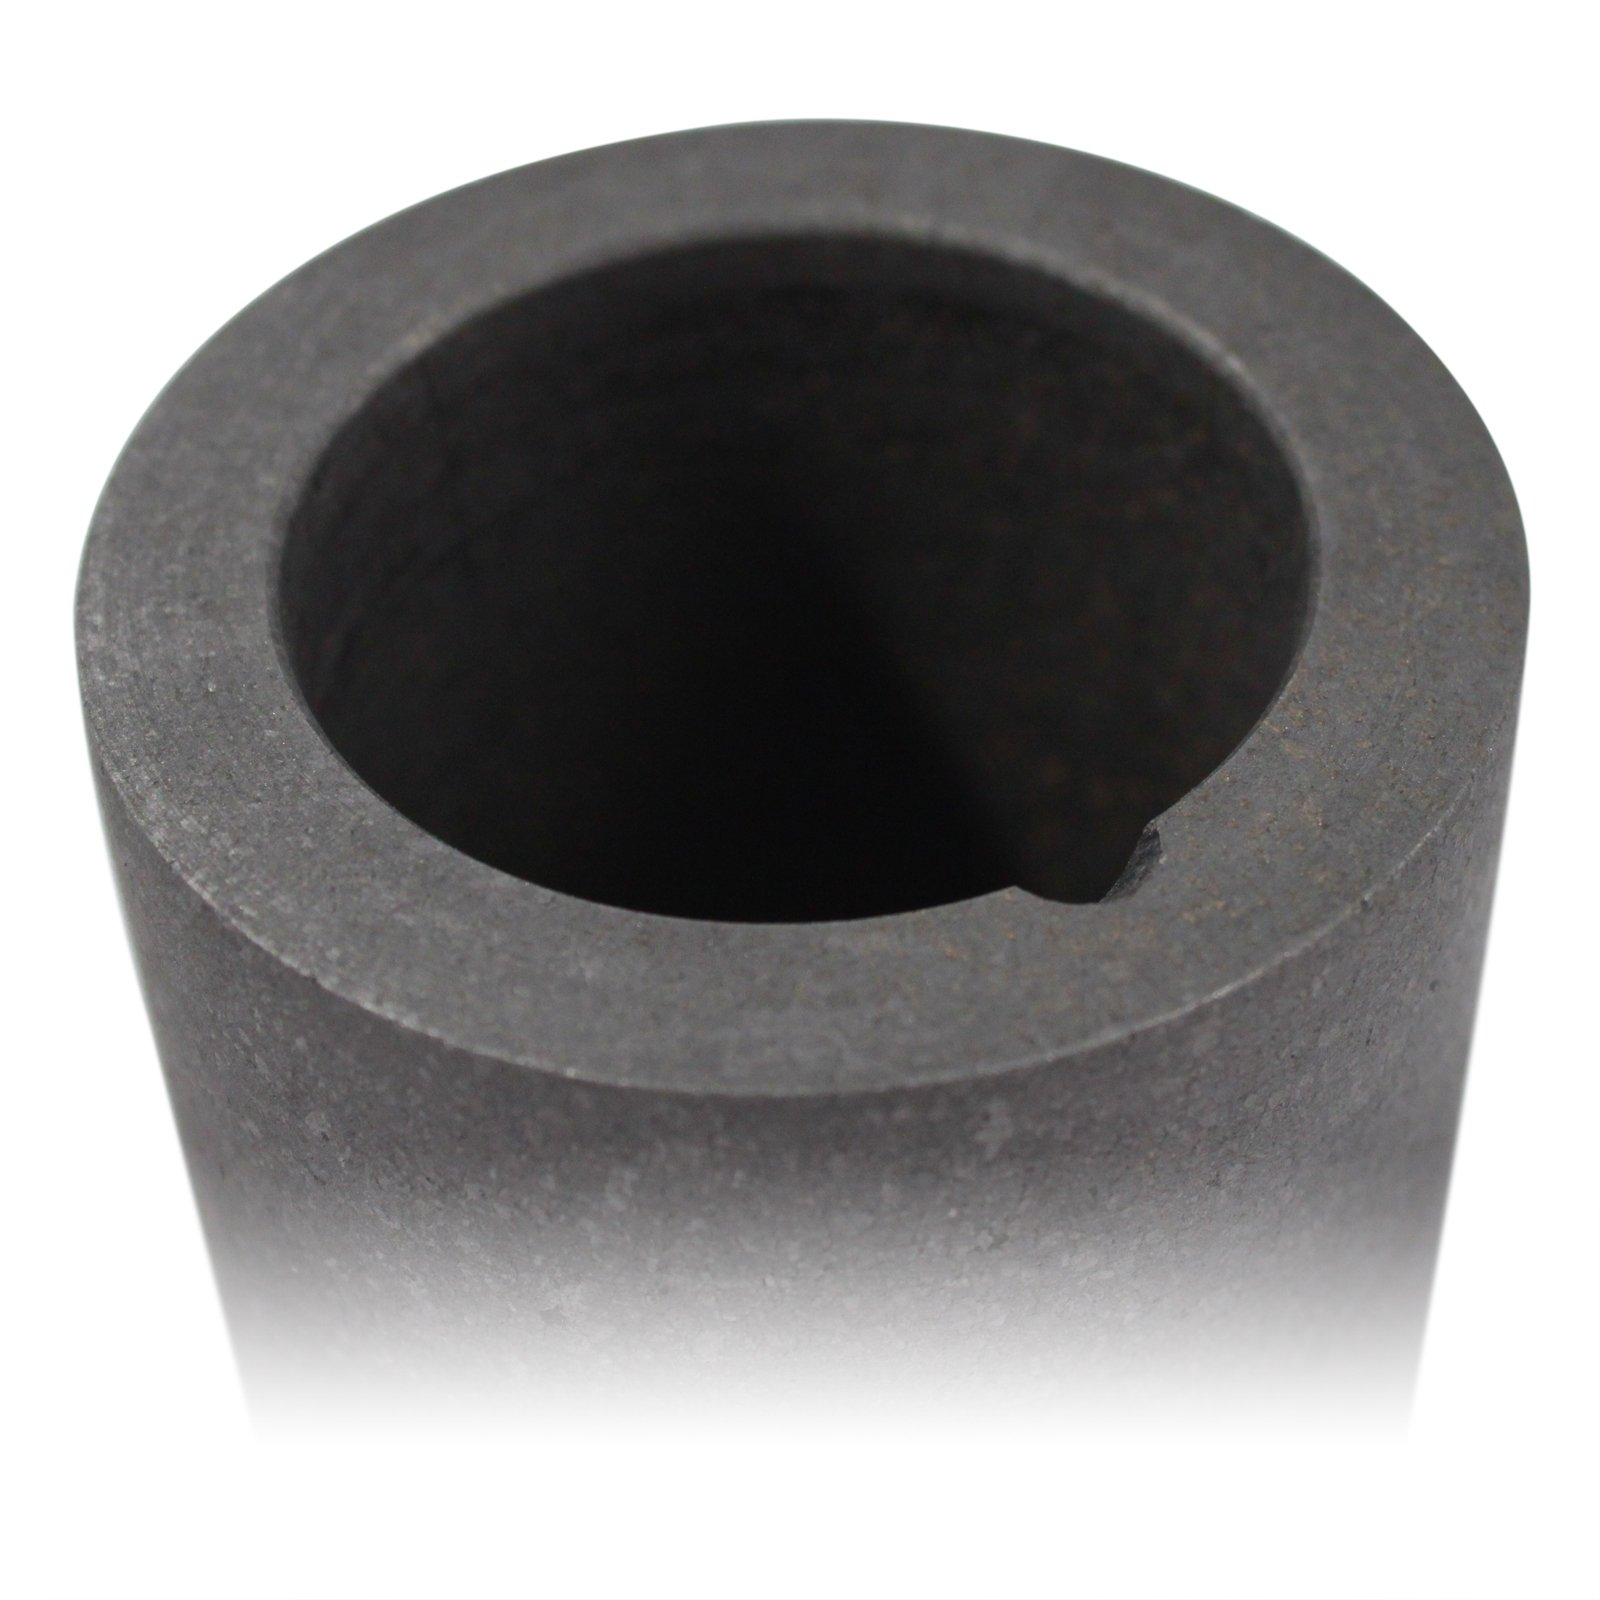 Universal Tool Graphite Crucible for Melting Gold and Silver - 2.5 x 2.5 Inch